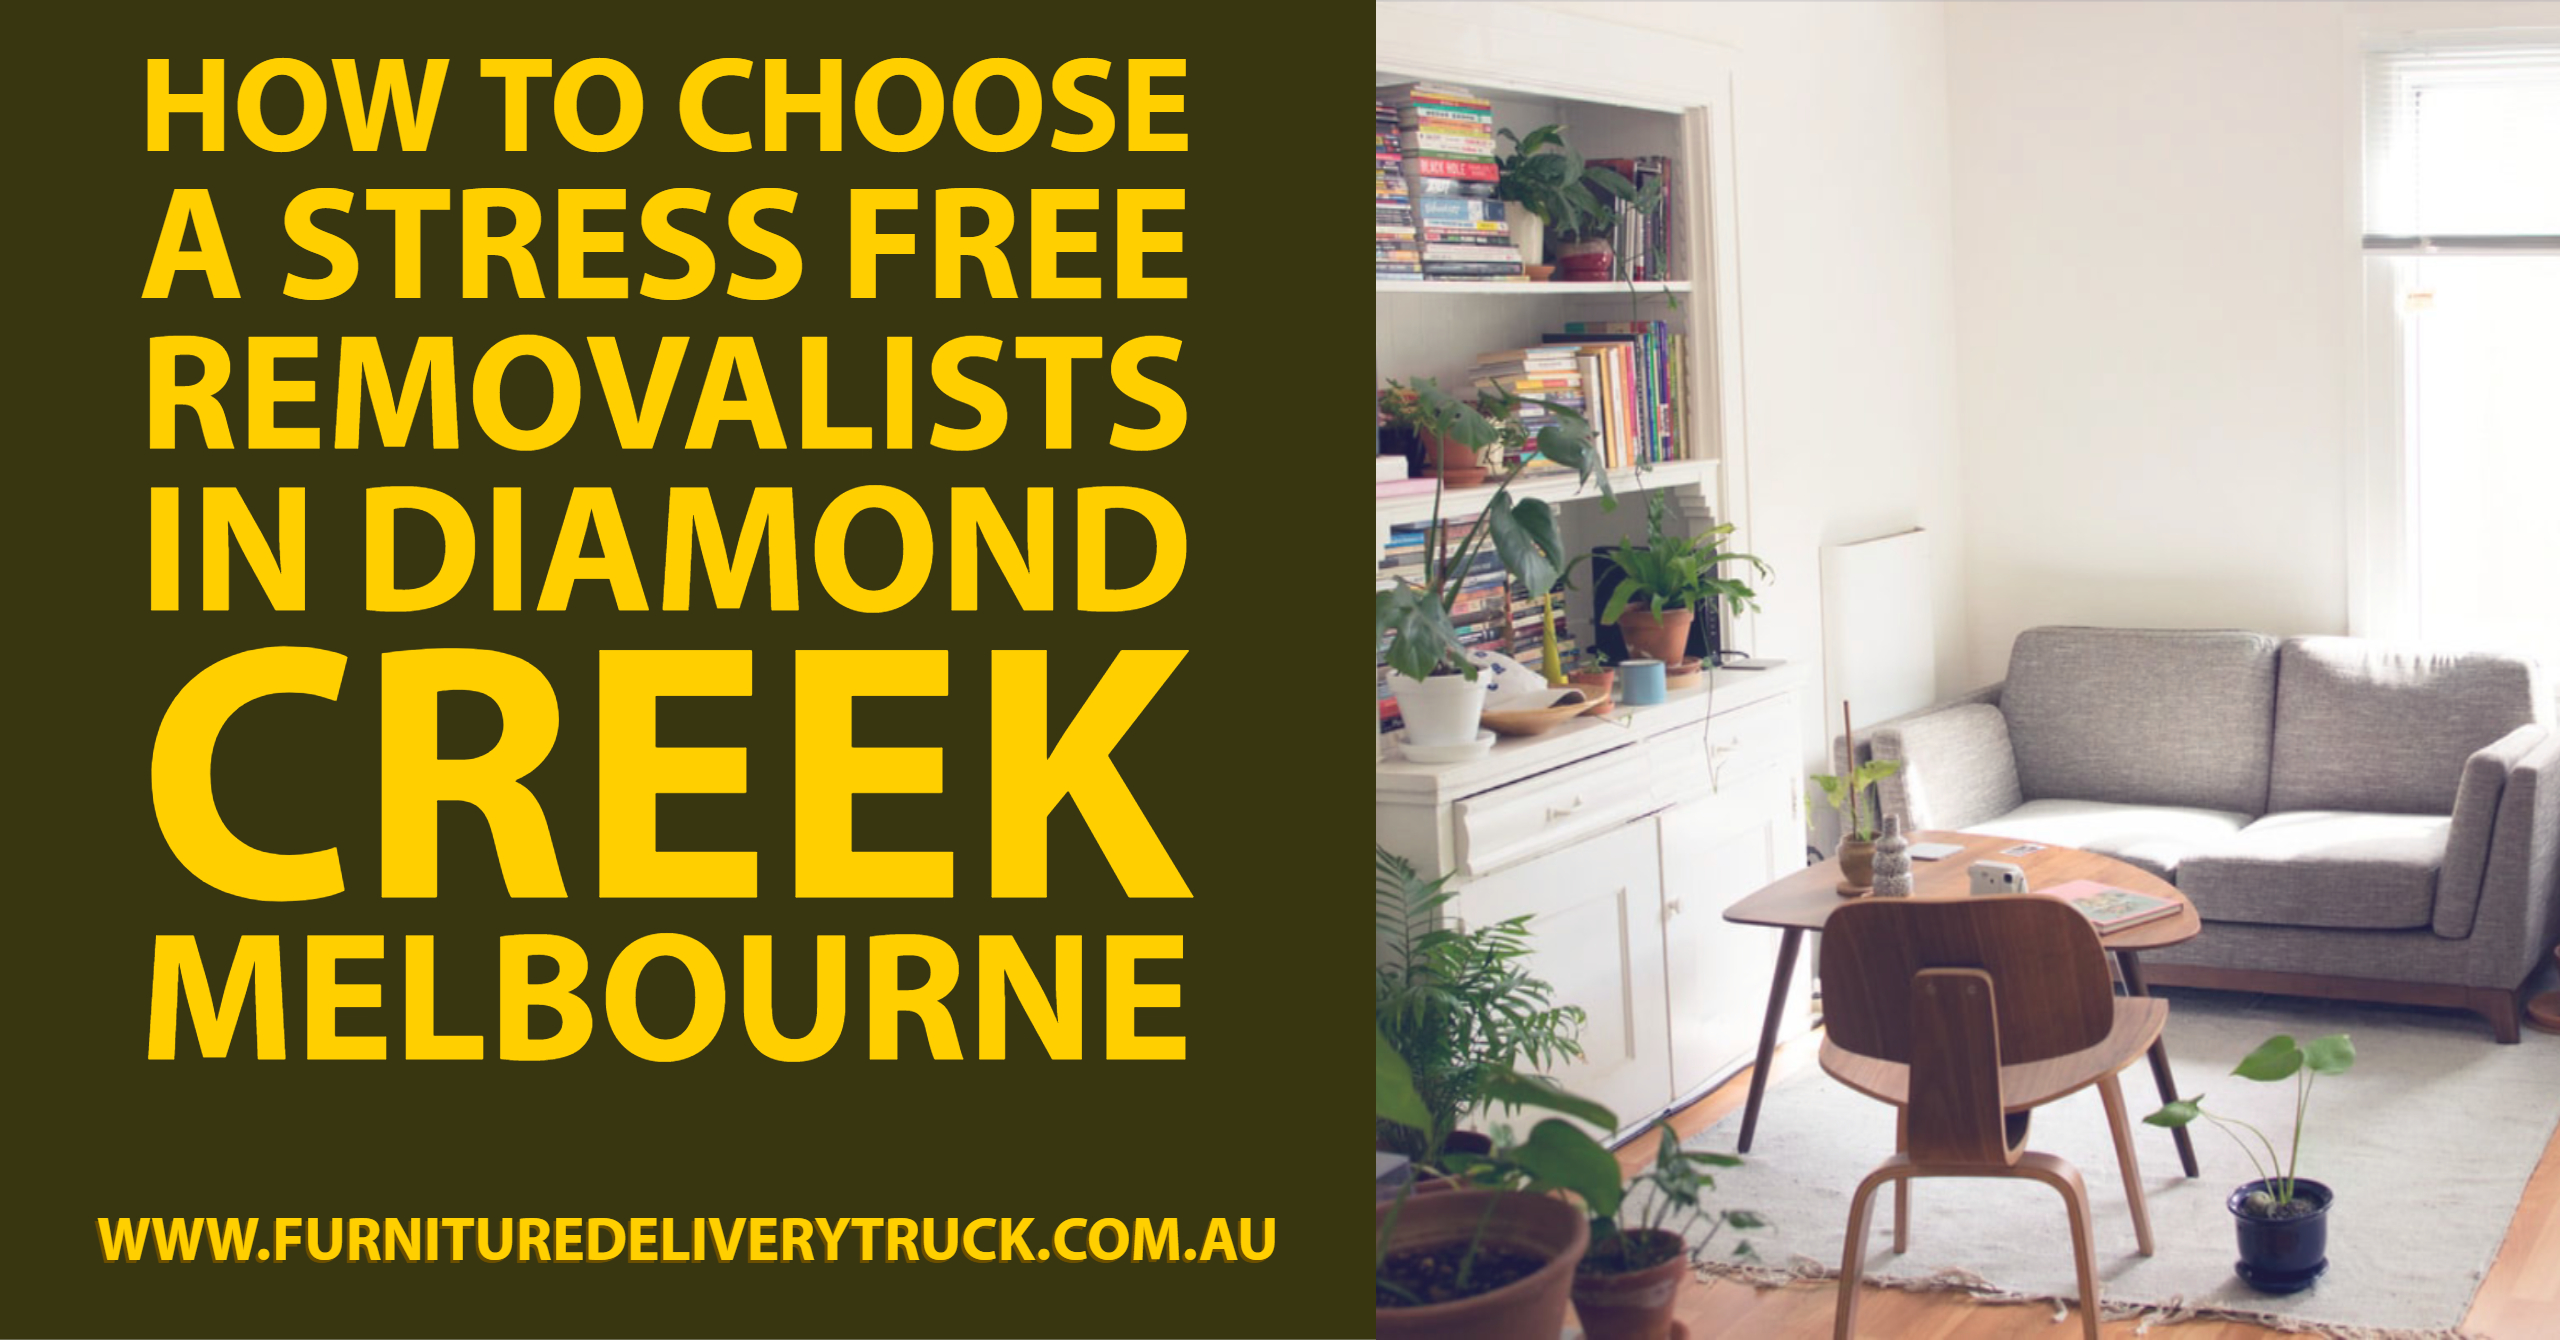 How to Choose a Stress Free Removalists in Diamond Creek Melbourne